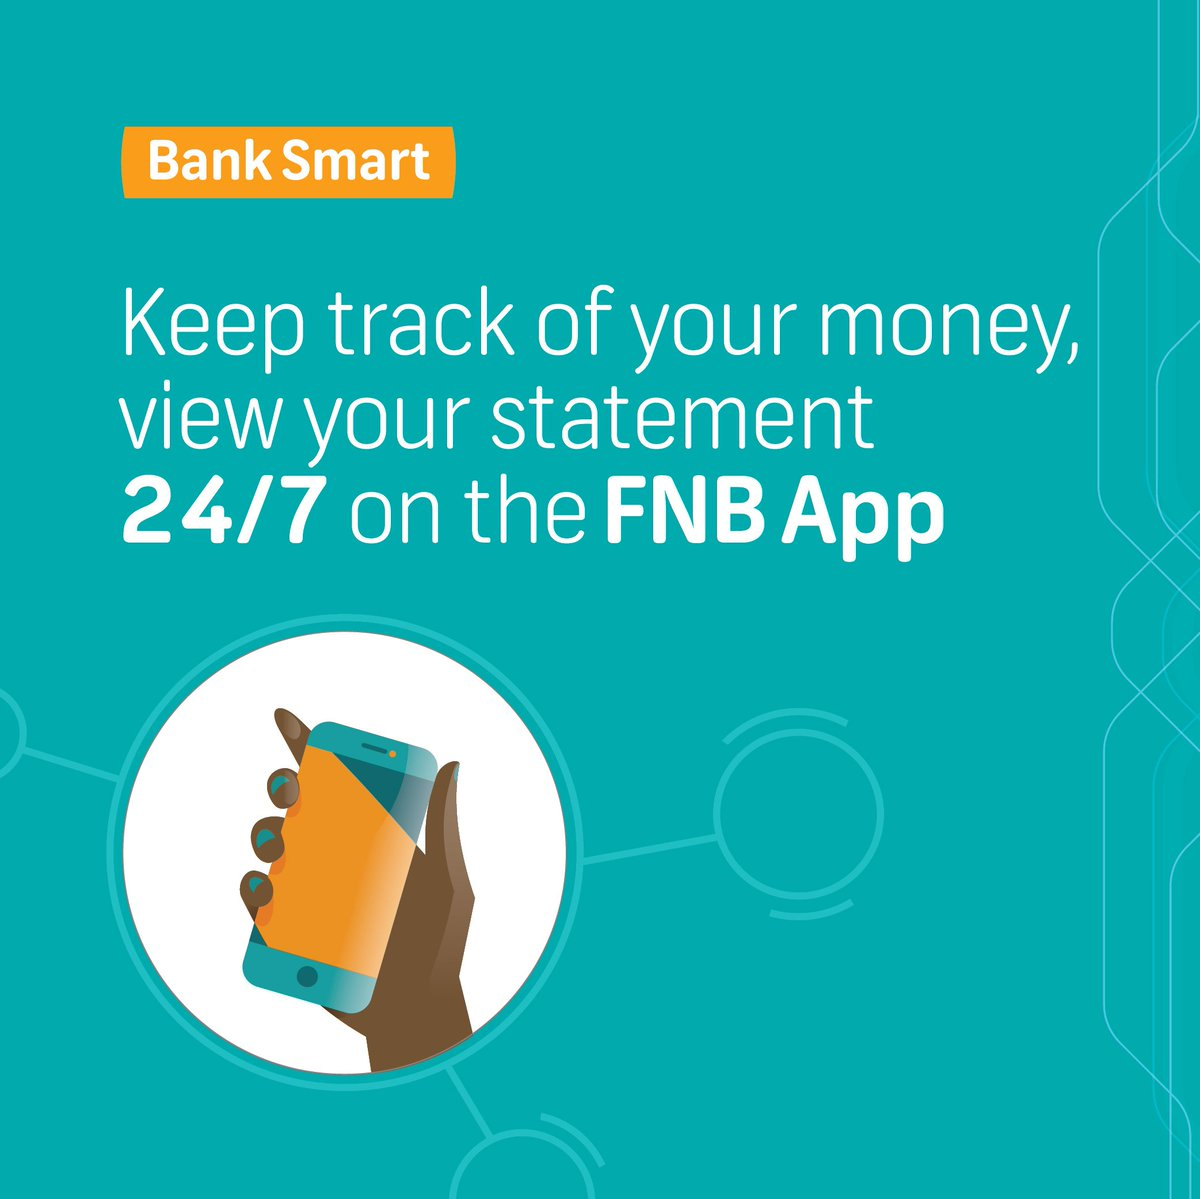 Download the FNB Banking App and #BankSmart  You can now